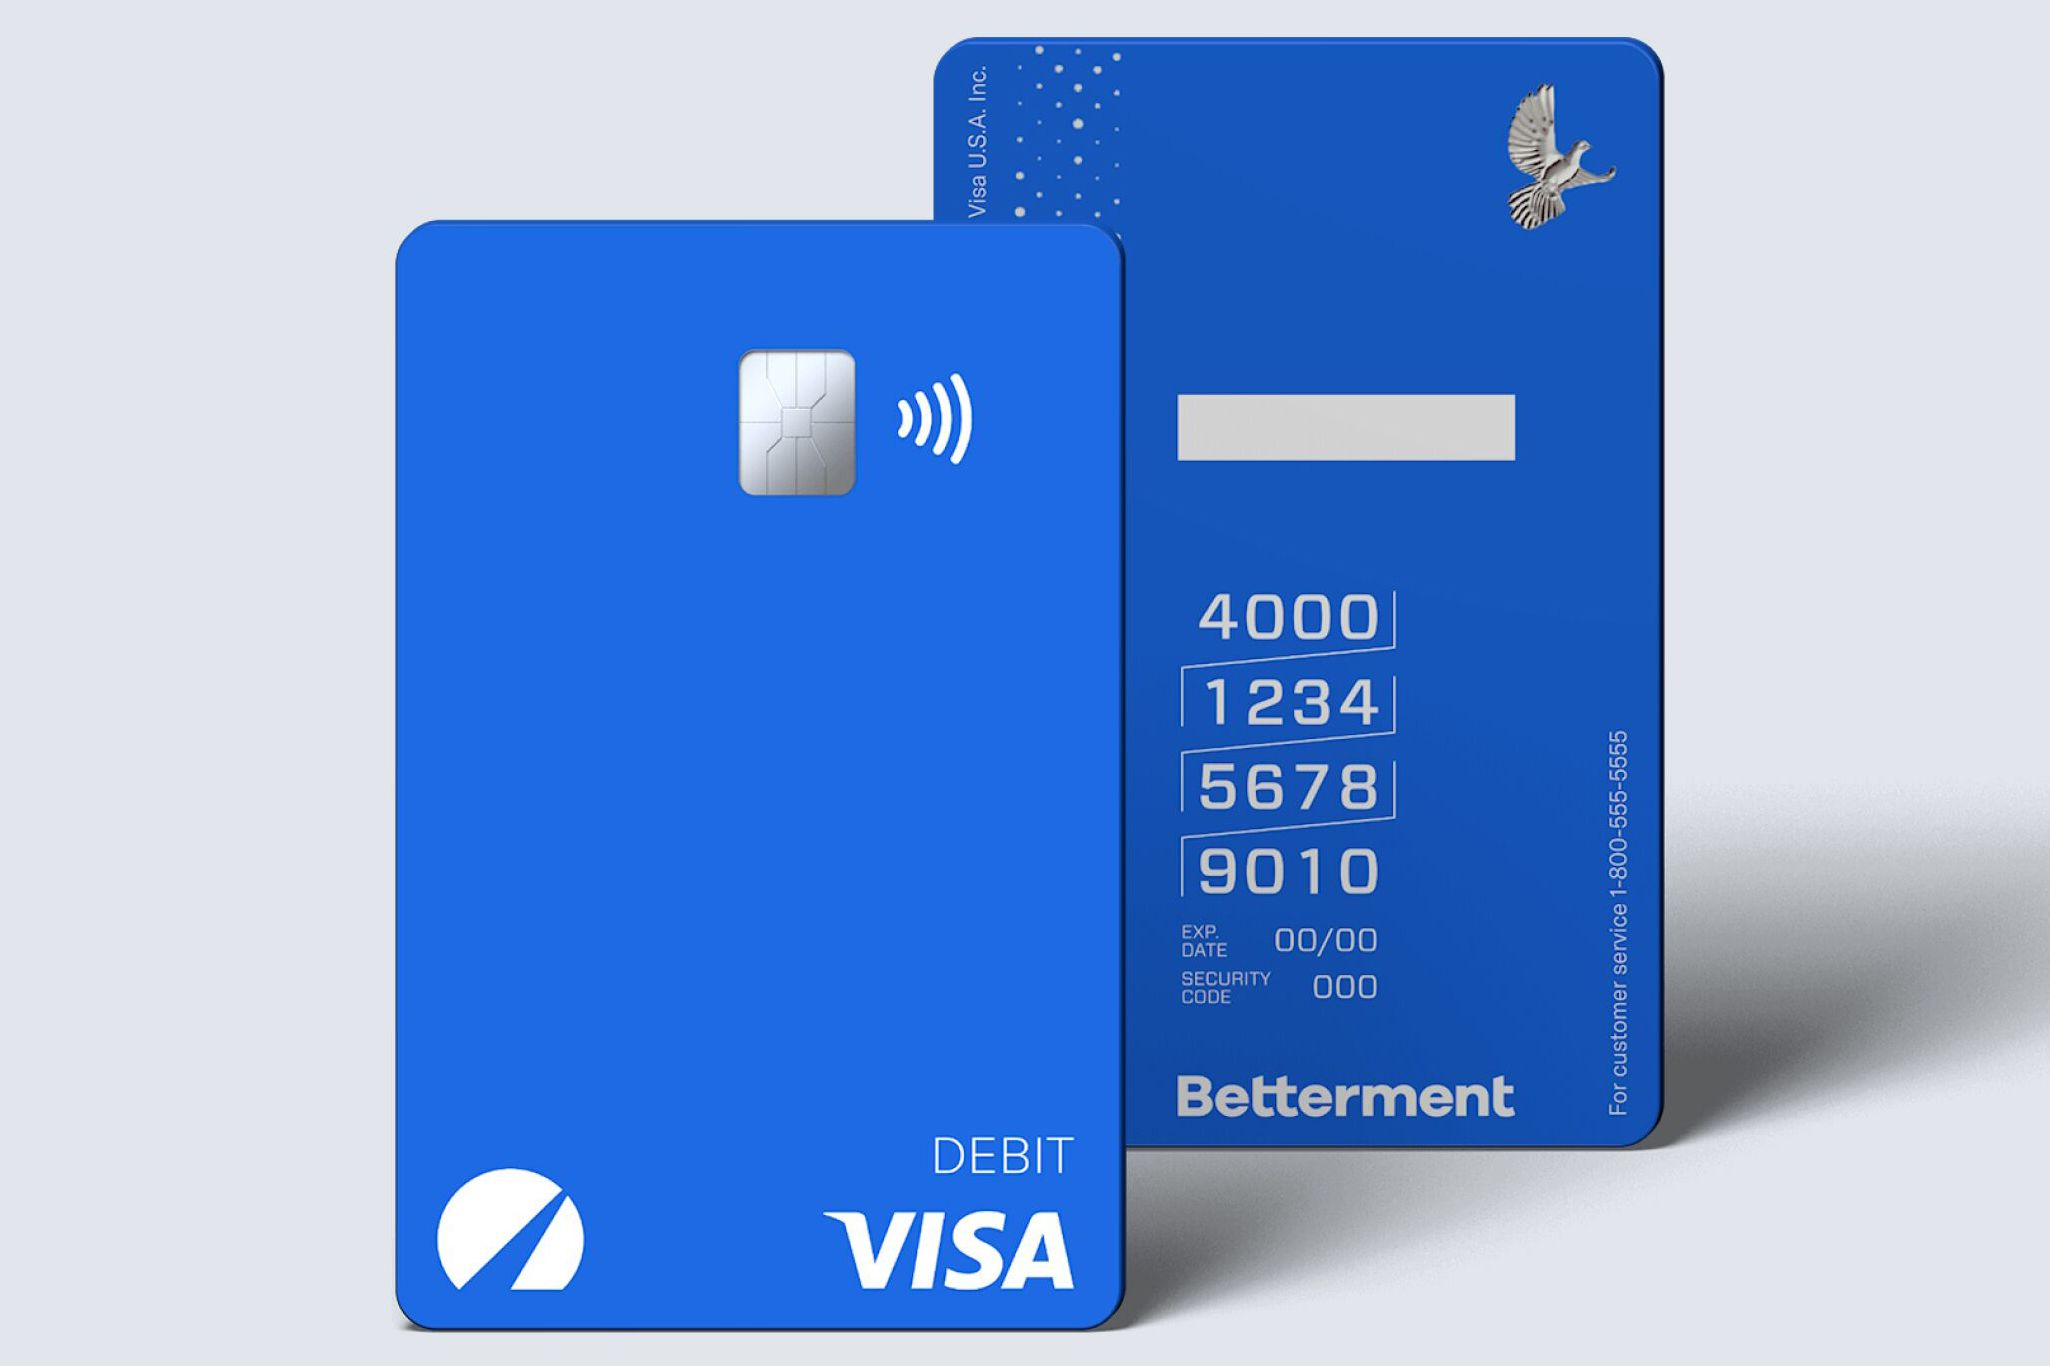 Betterment faces questions from regulator after launching checking and savings account